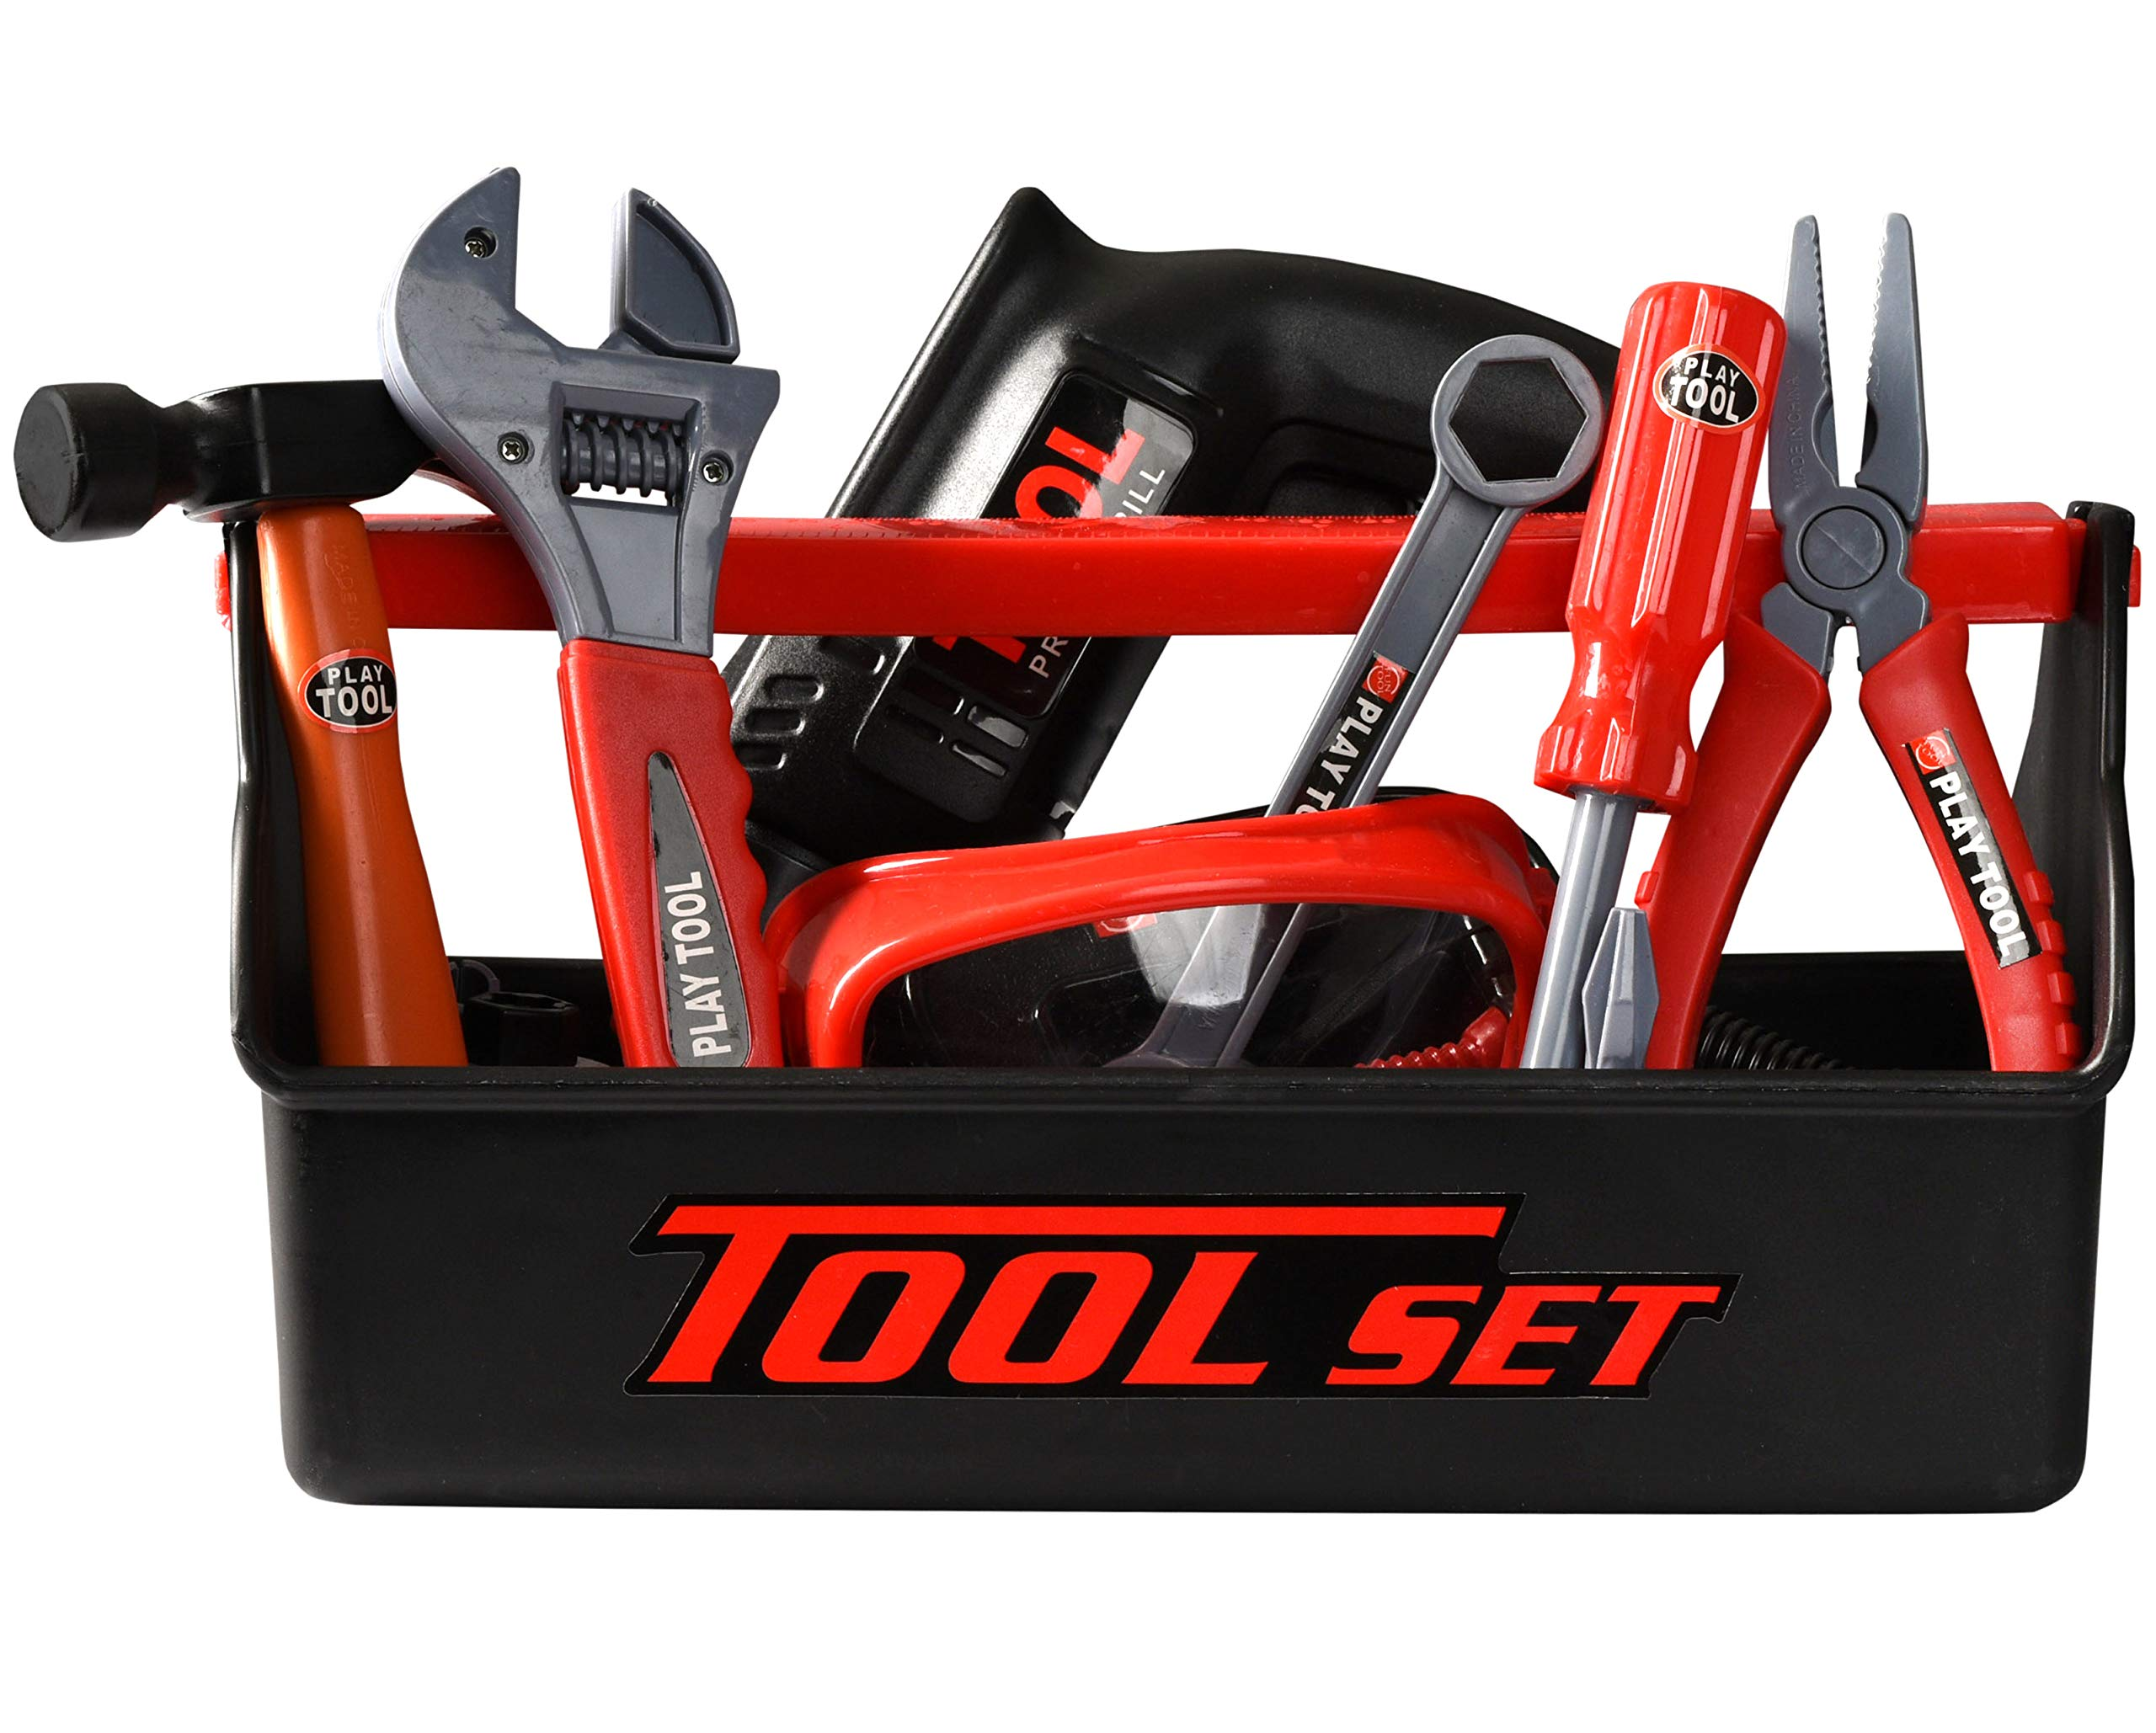 Playkidz Tool Box for Kids 22-Piece Boys & Girls Construction Toy Playset w/Carry Chest, Working Push Button Power Drill, Hammer, Screwdriver, Wrench, Pliers, Saw & Other Realistic Tools Ages 3+ by Playkidz